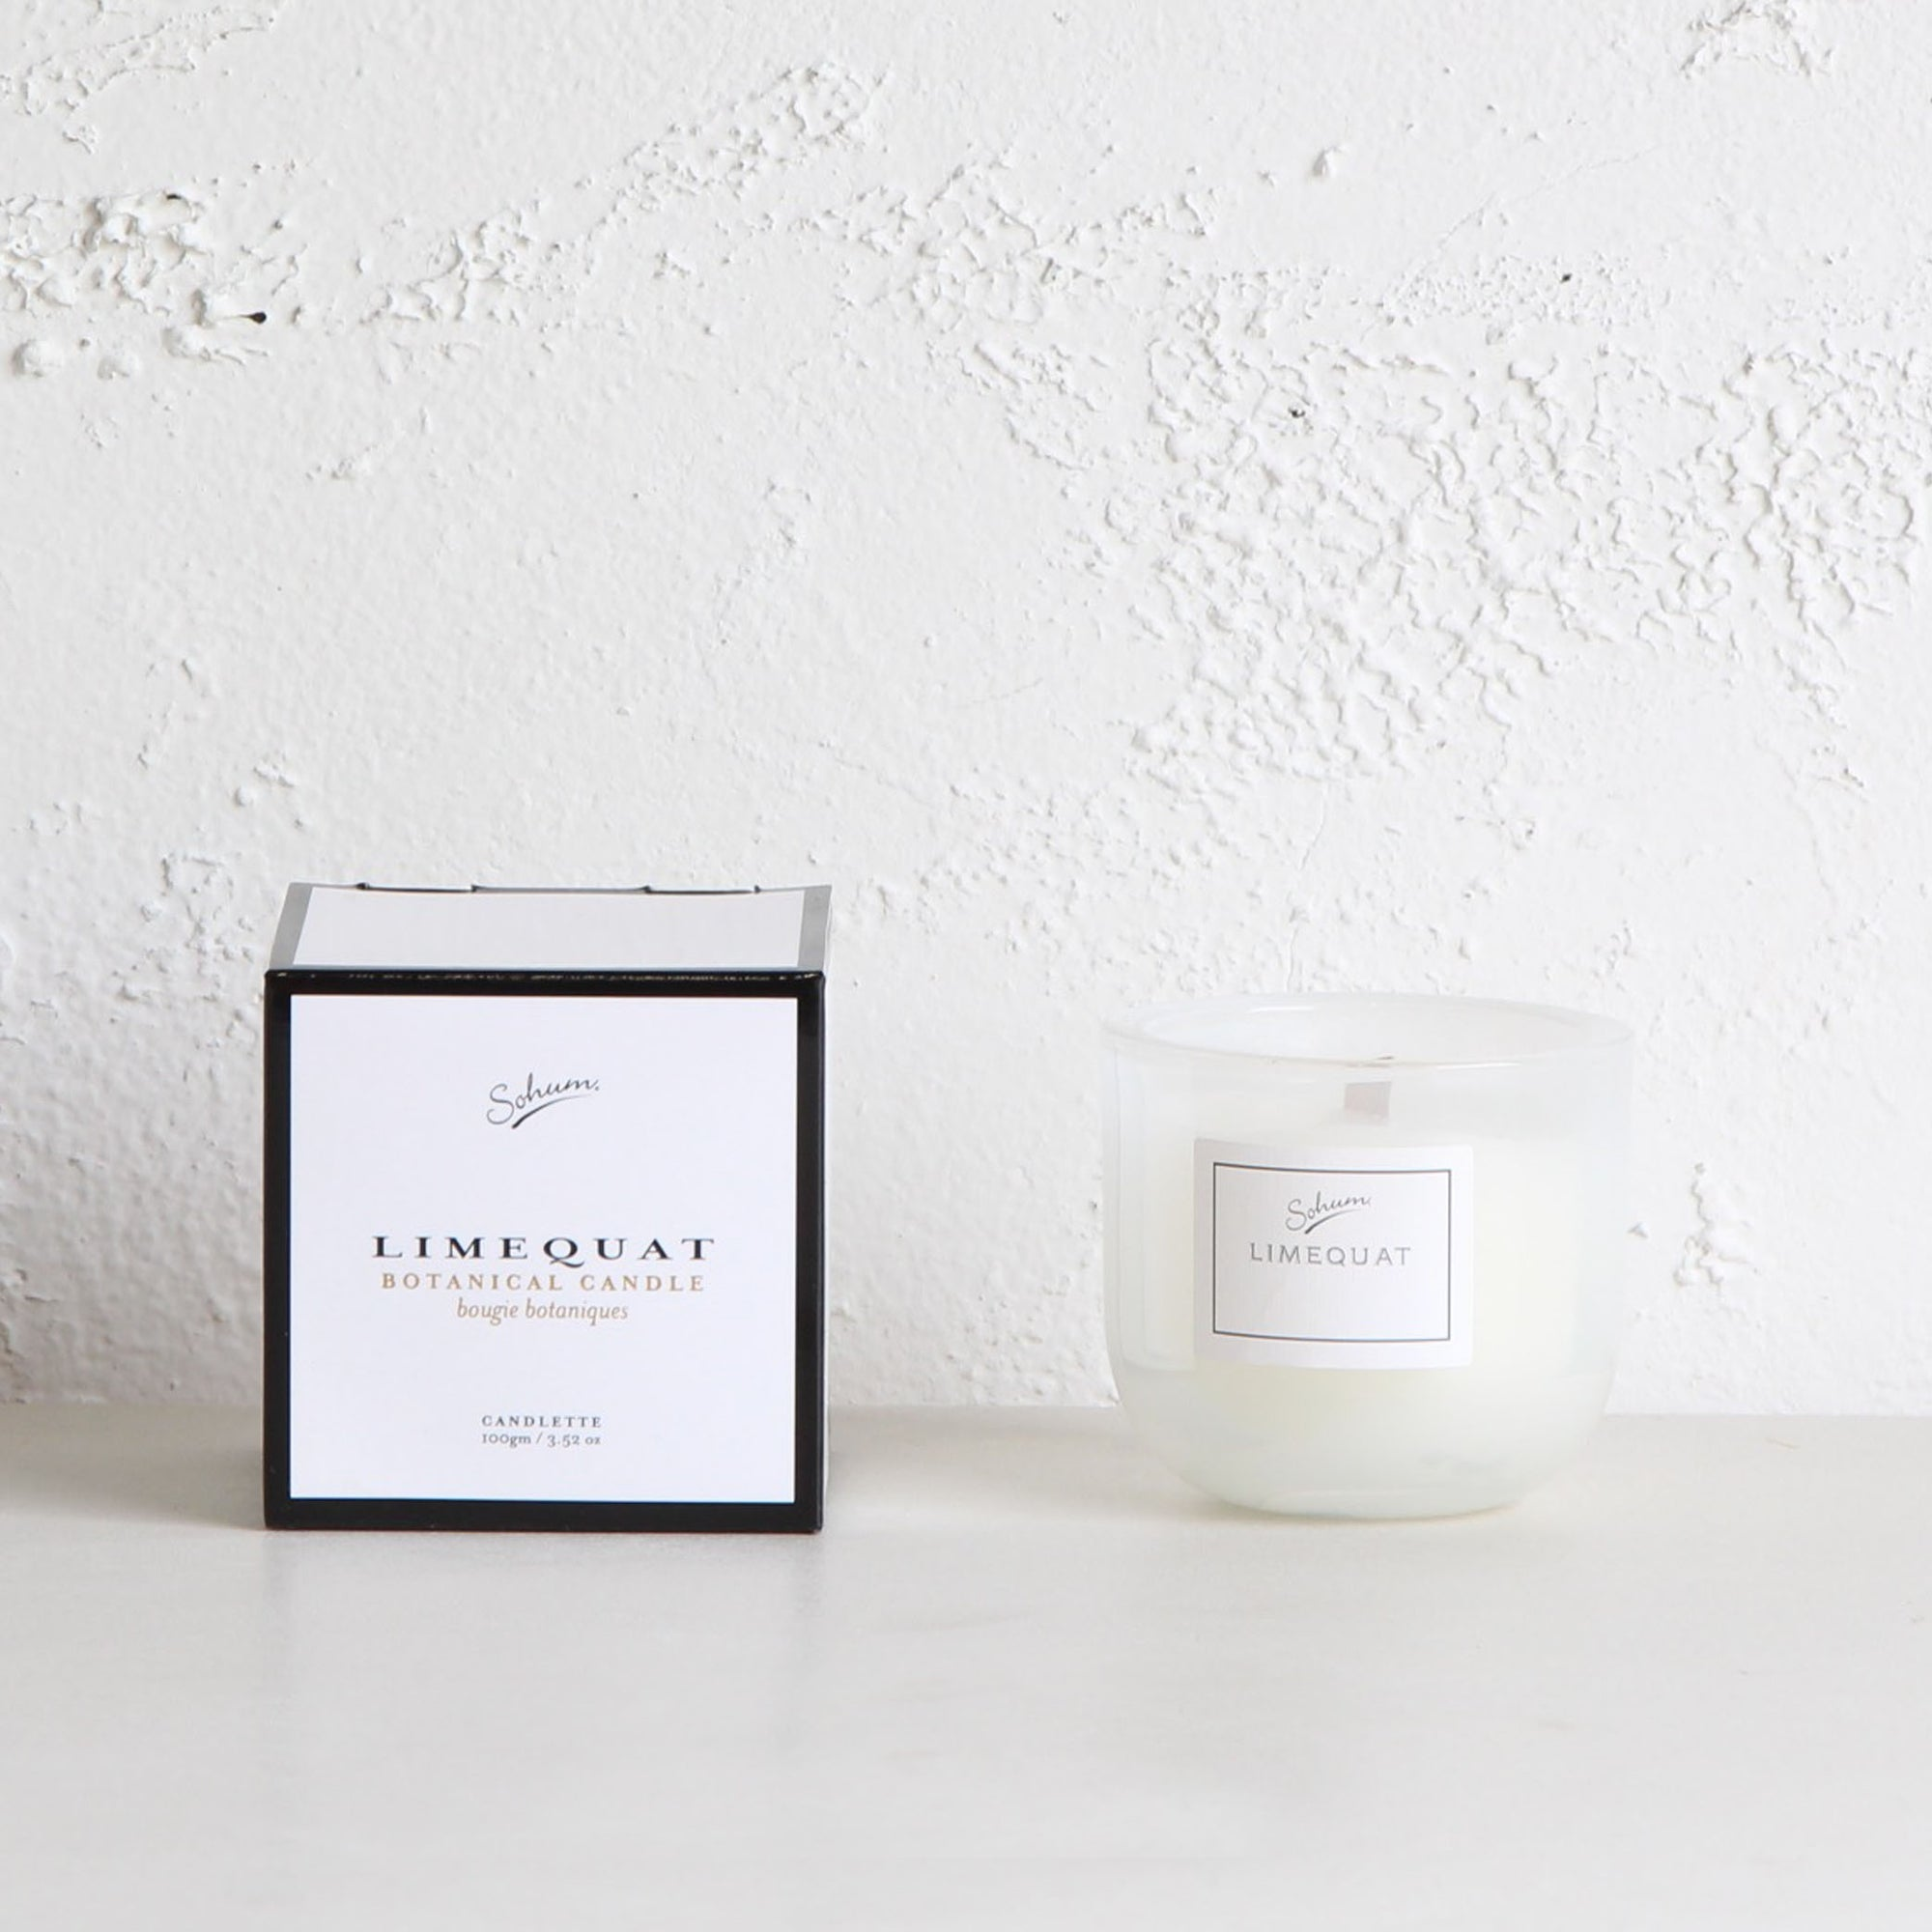 SOHUM BOTANICAL WAX MID CANDLETTE  |  LIMEQUAT